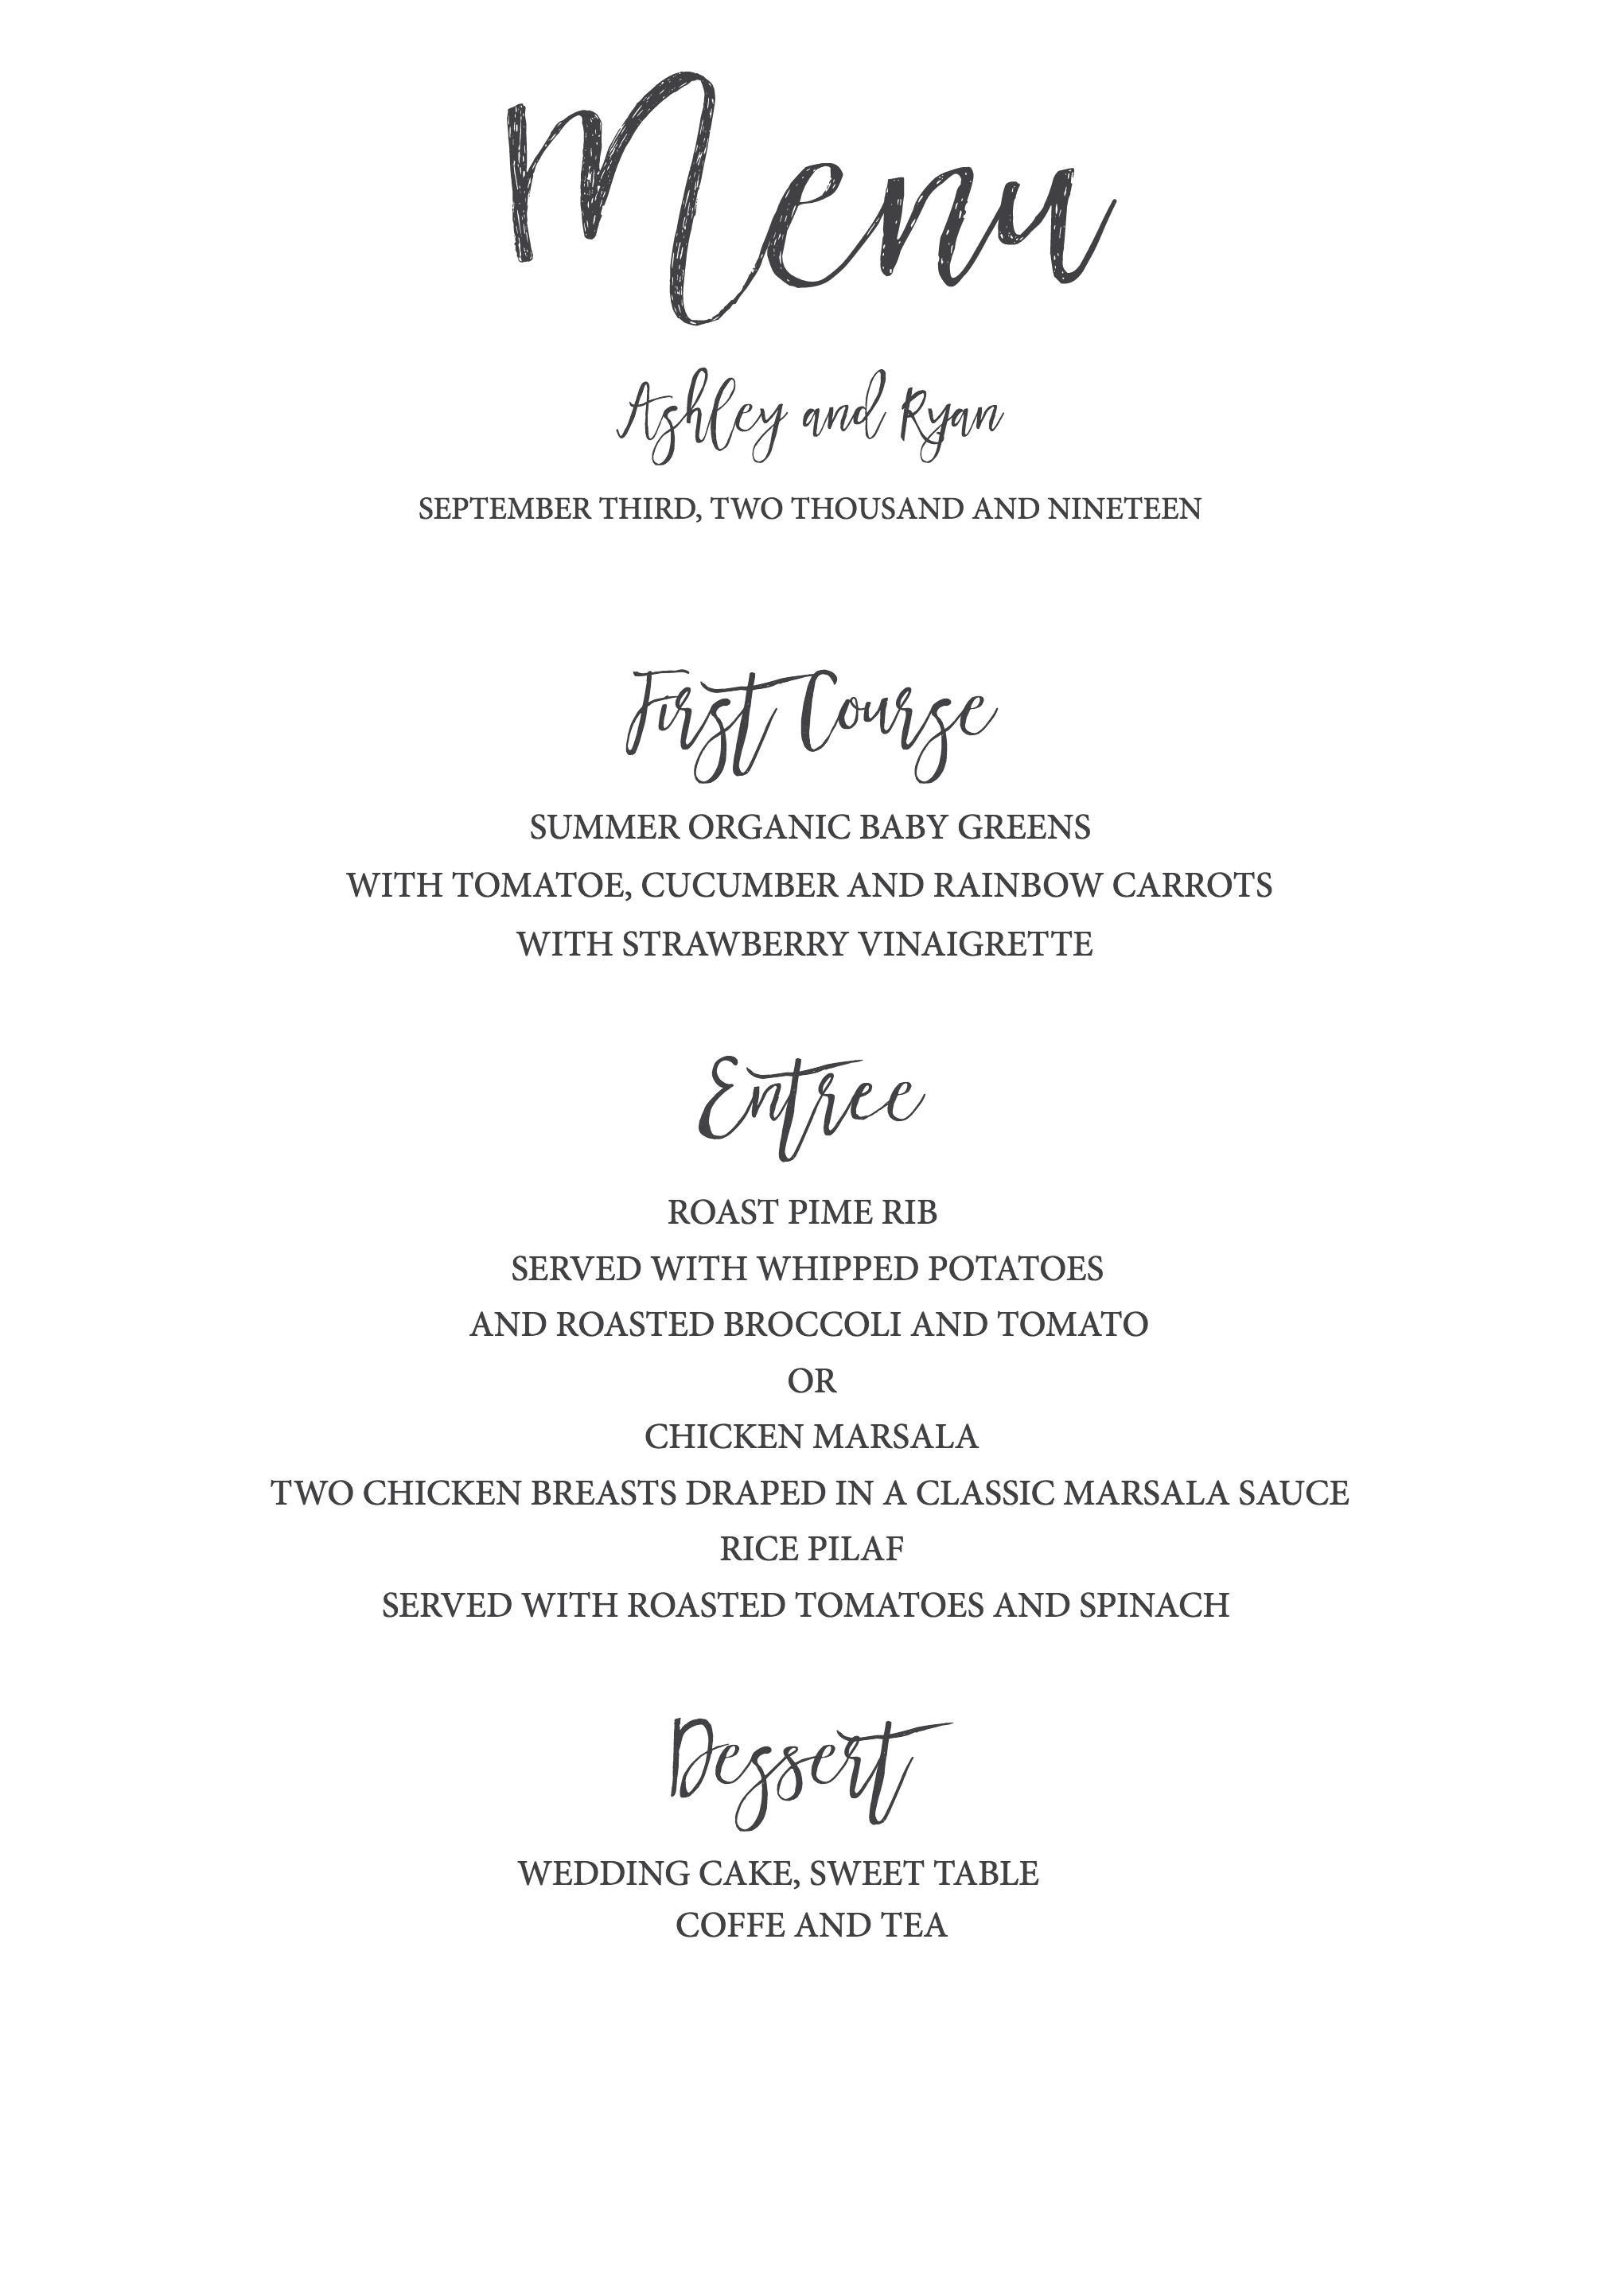 Wedding Menu Template Free Unforgettable Ideas Downloads Card For Free Wedding Menu Template For Word